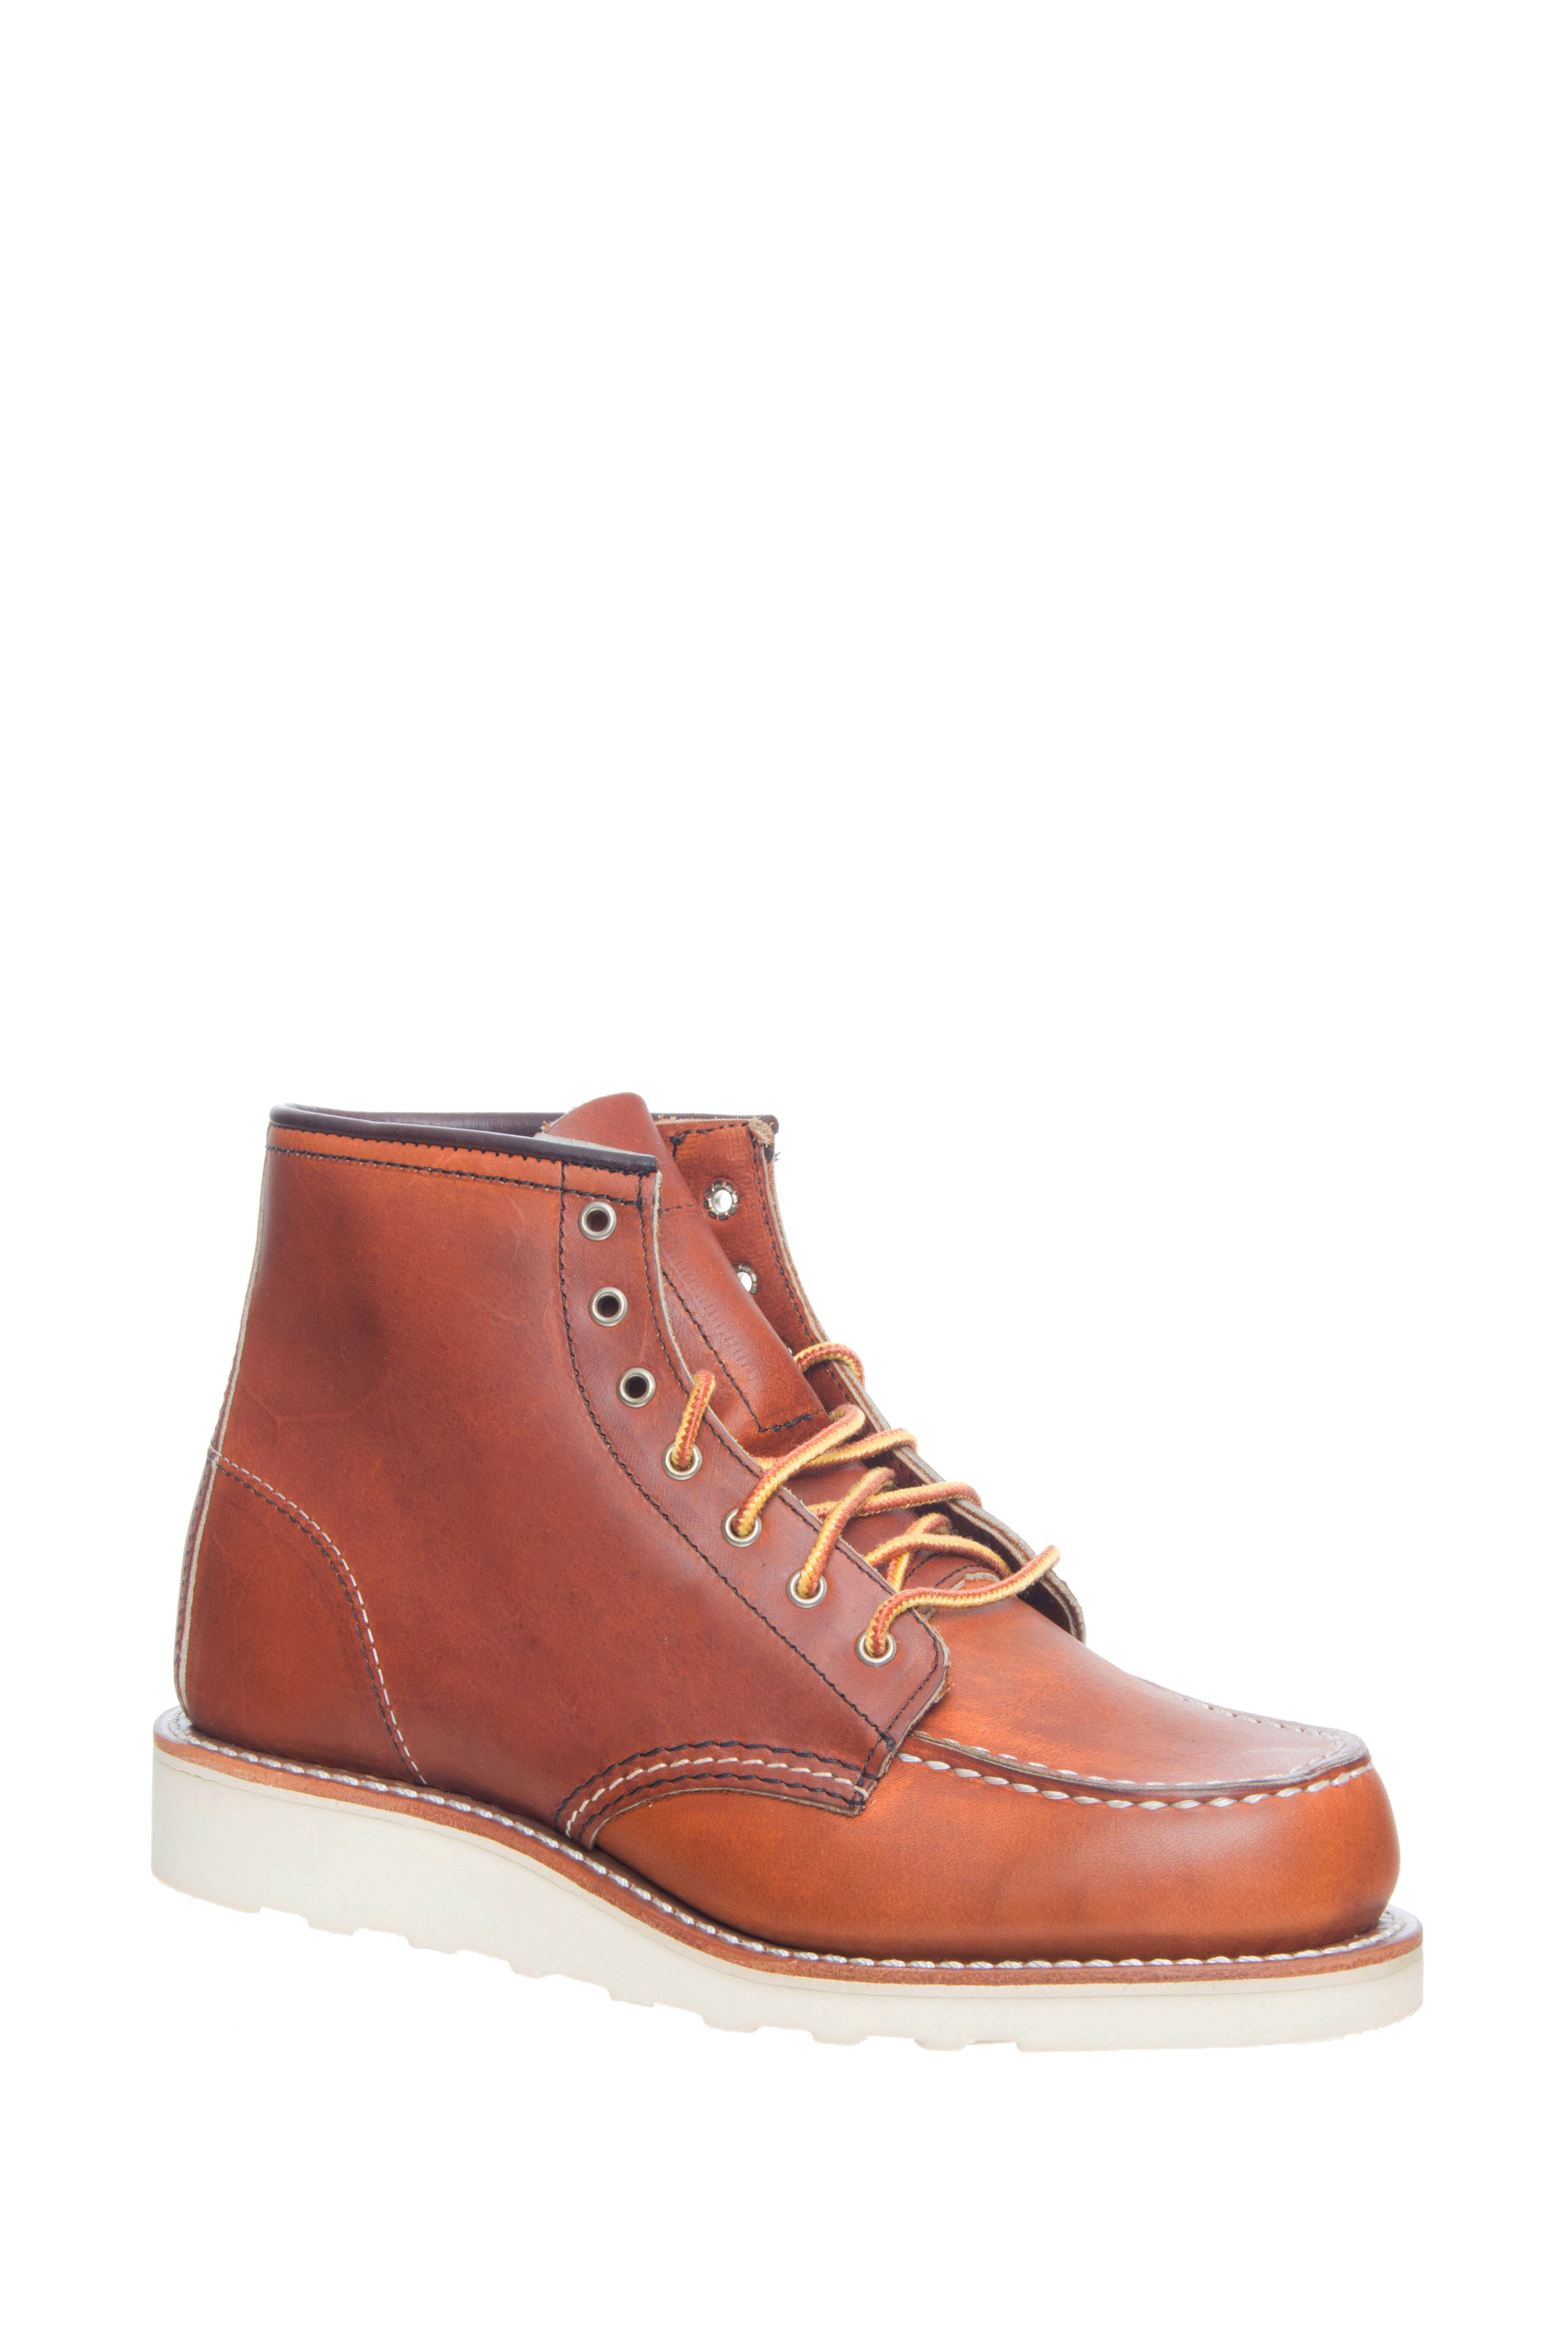 Red Wing 6 inch Classic Moc Toe Boots - Oro Legacy